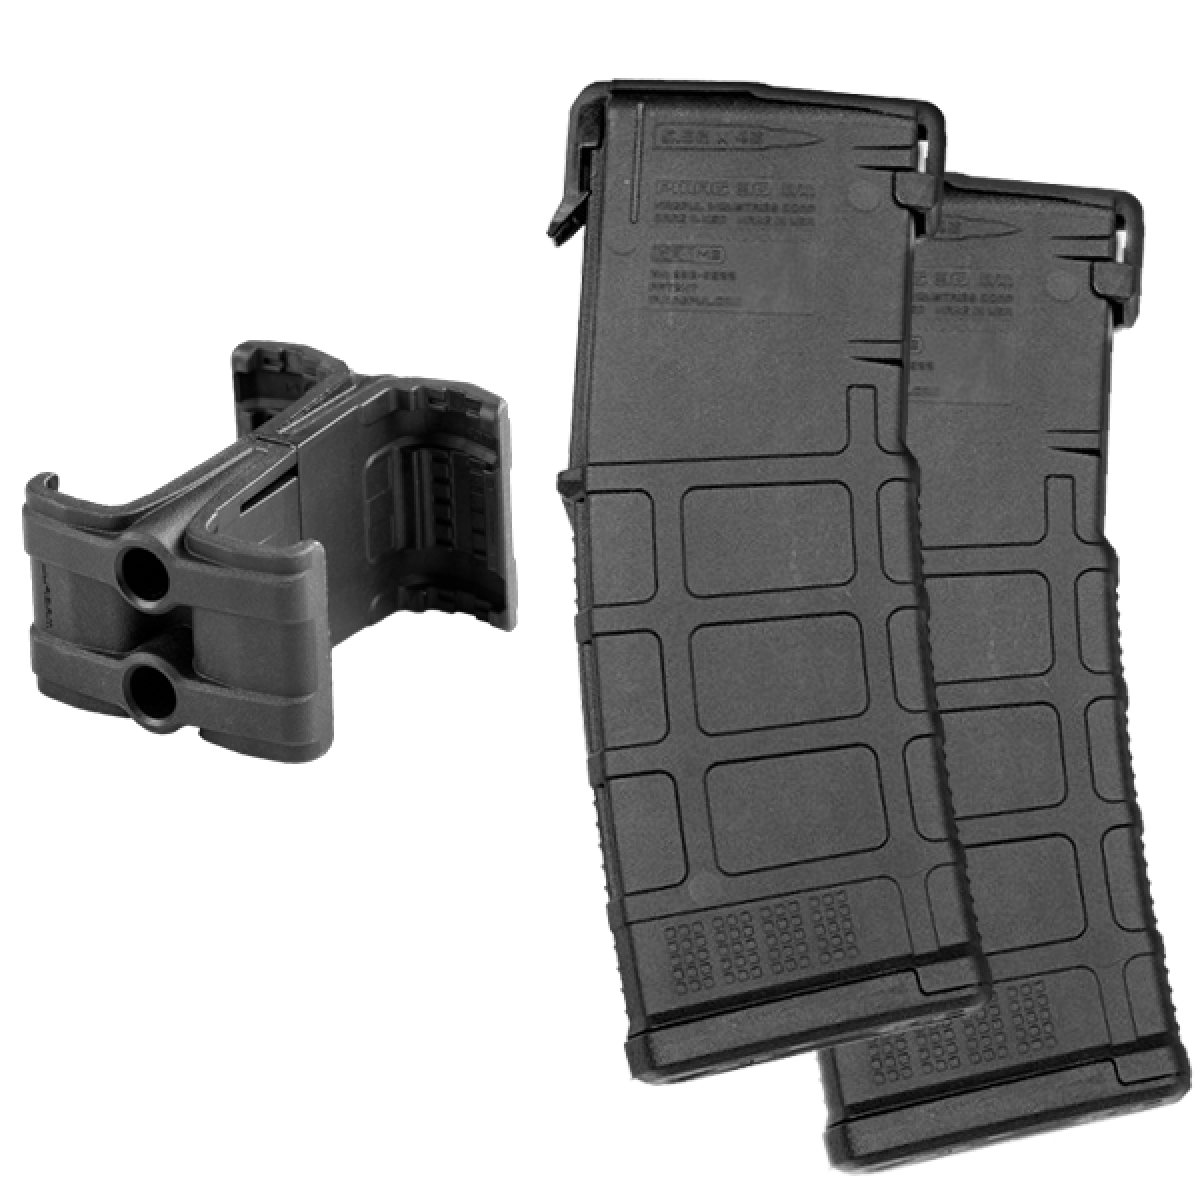 Ar clip coupler. Two magpul pmag gen